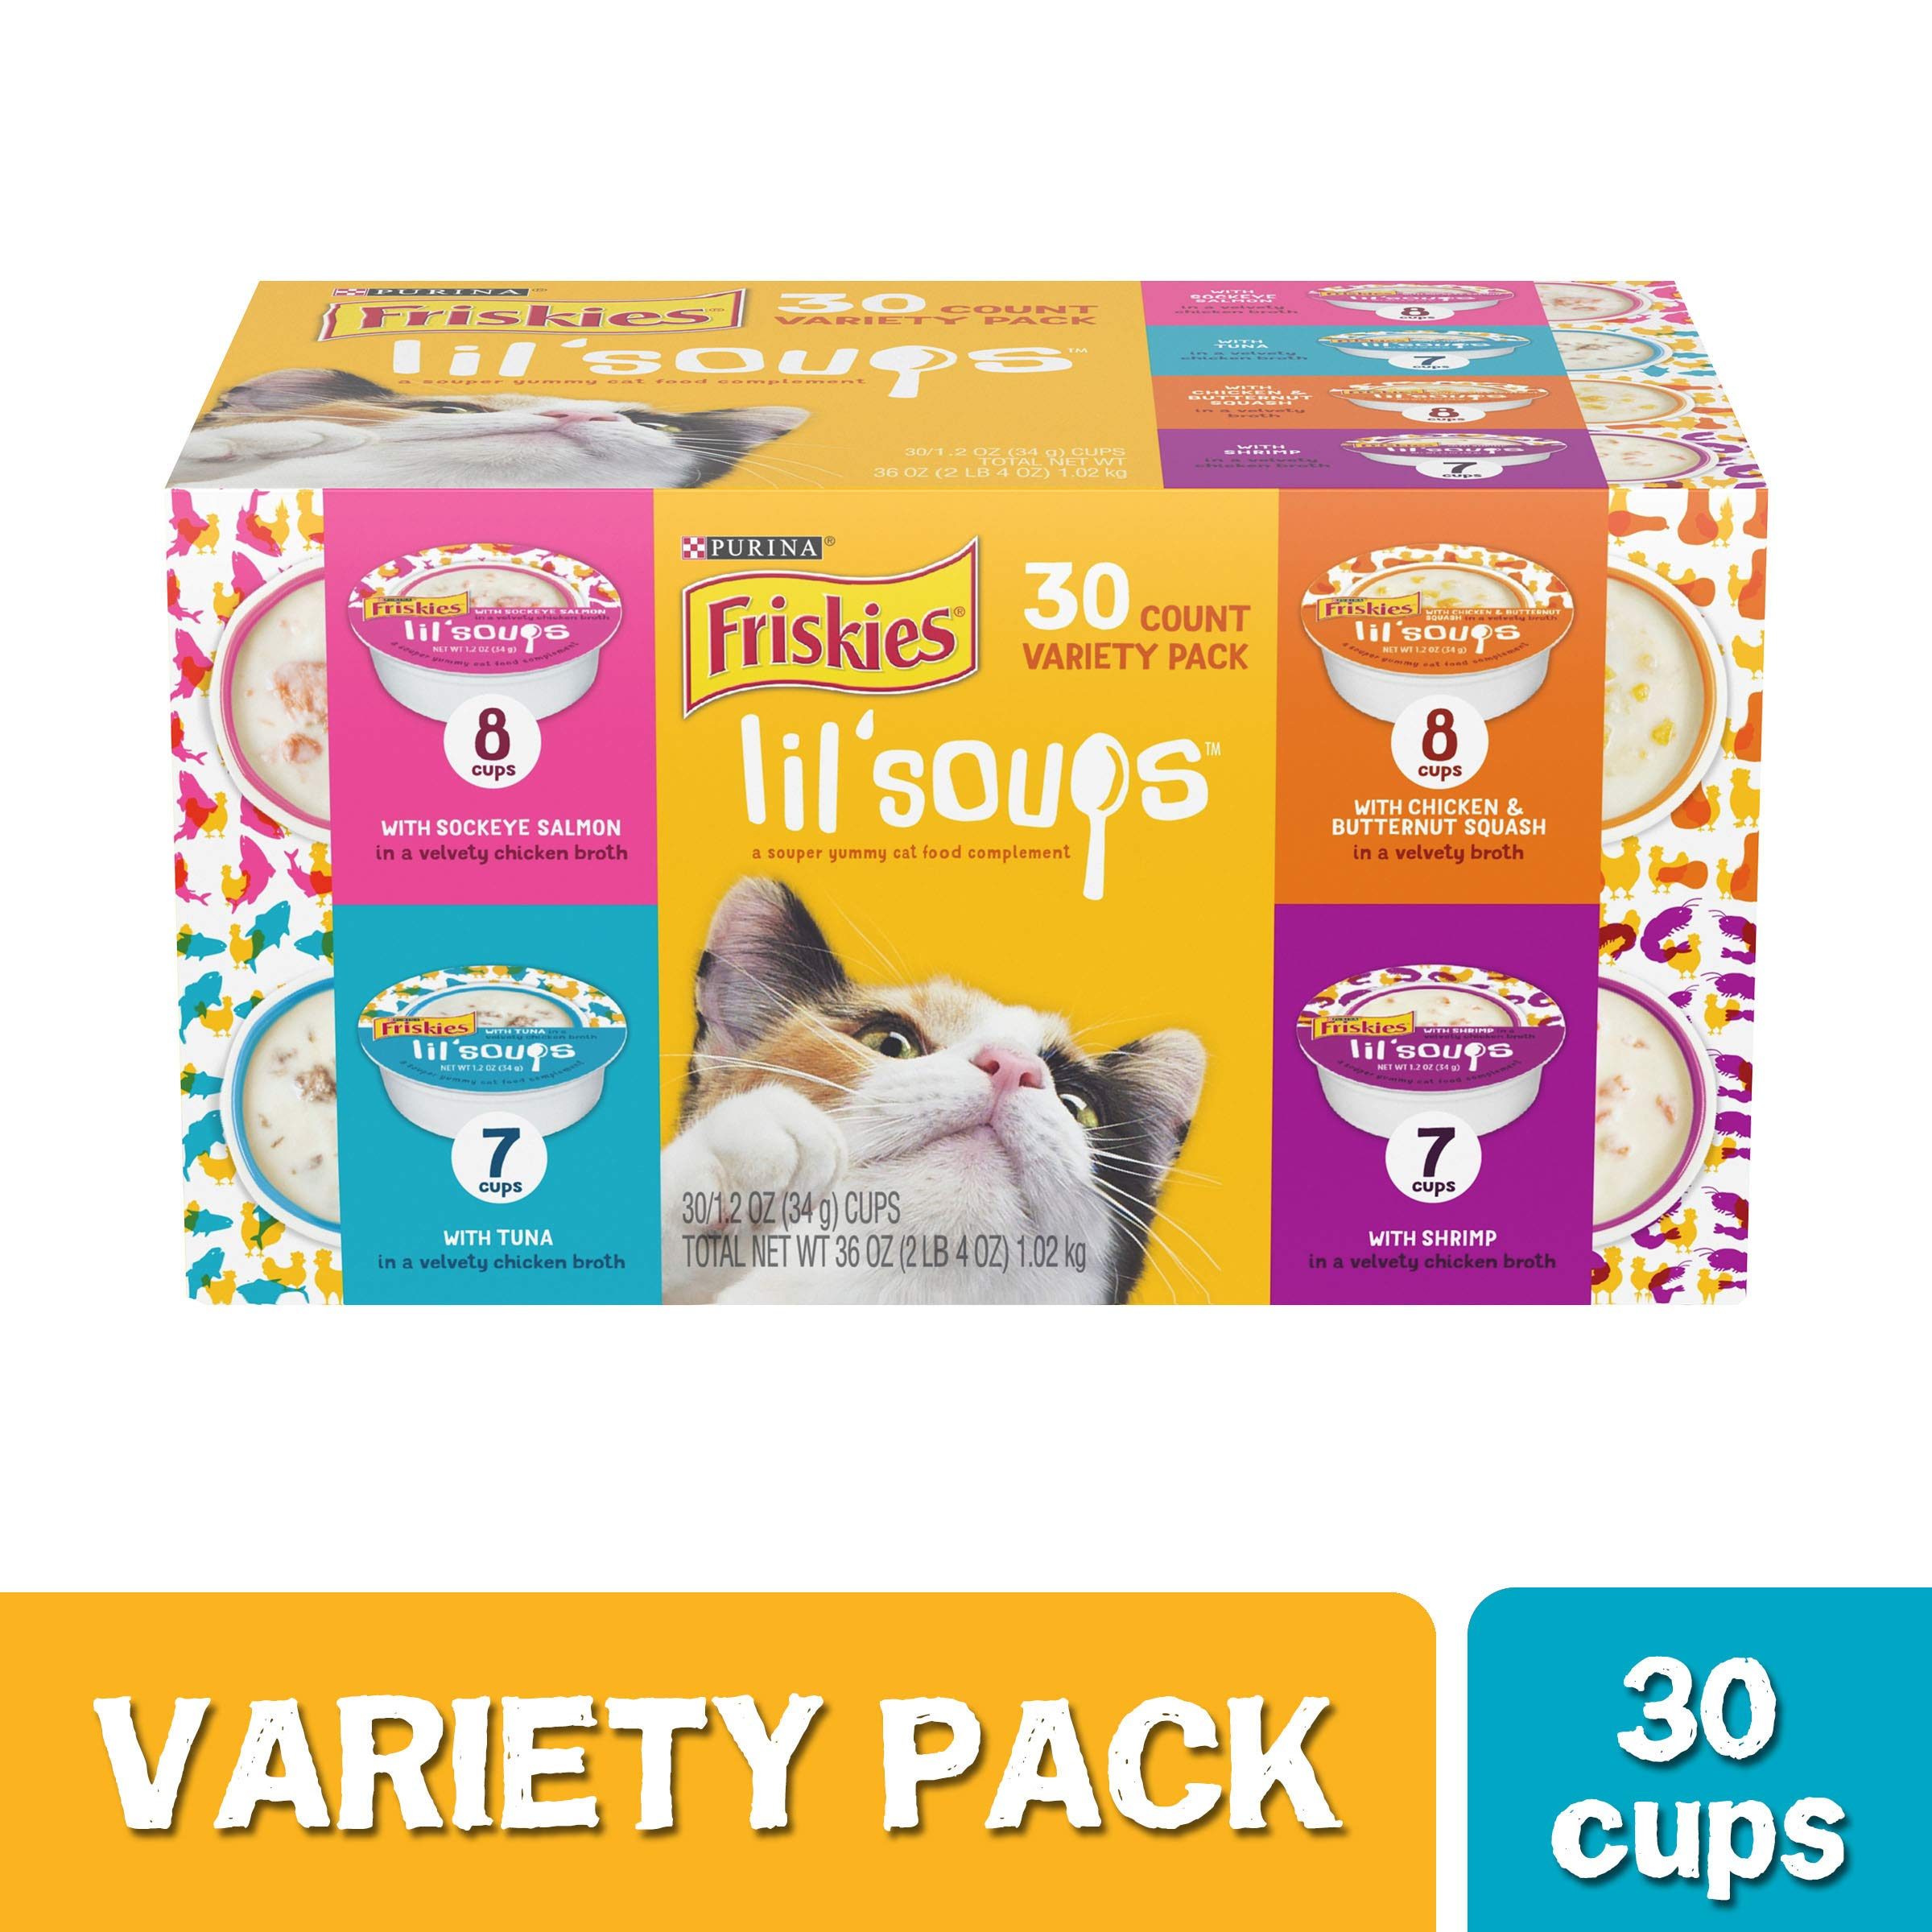 Purina Friskies Grain Free Wet Cat Food Complement Variety Pack, Lil' Soups Salmon, Tuna, Chicken & Shrimp, 30 Count  (Pack of 1) by Purina Friskies